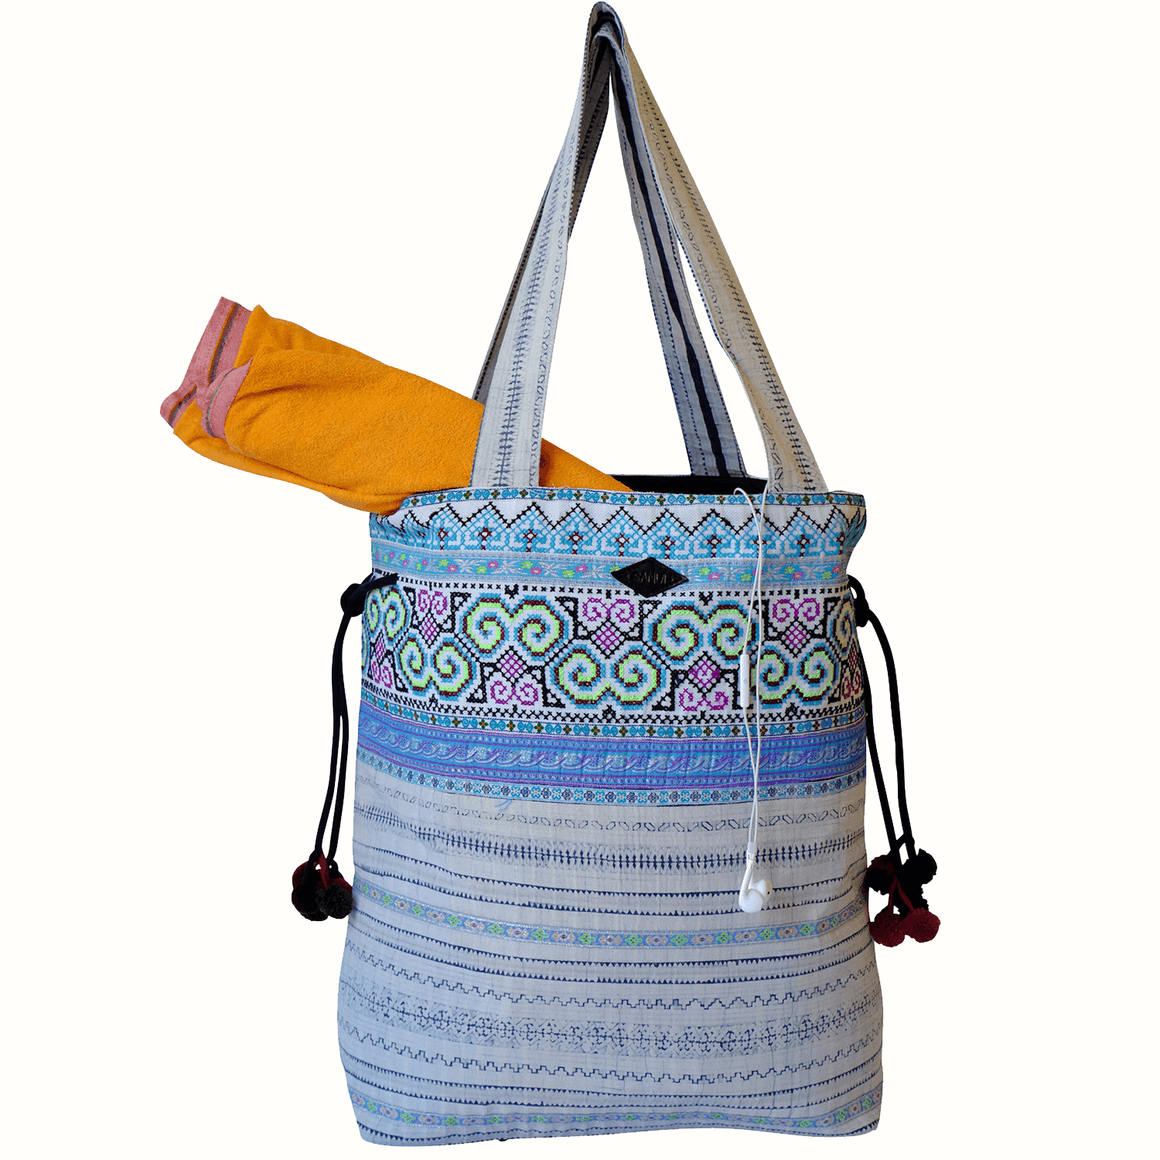 Samui Bags Sea Mist Weekender Bag Handmade Thai Bag